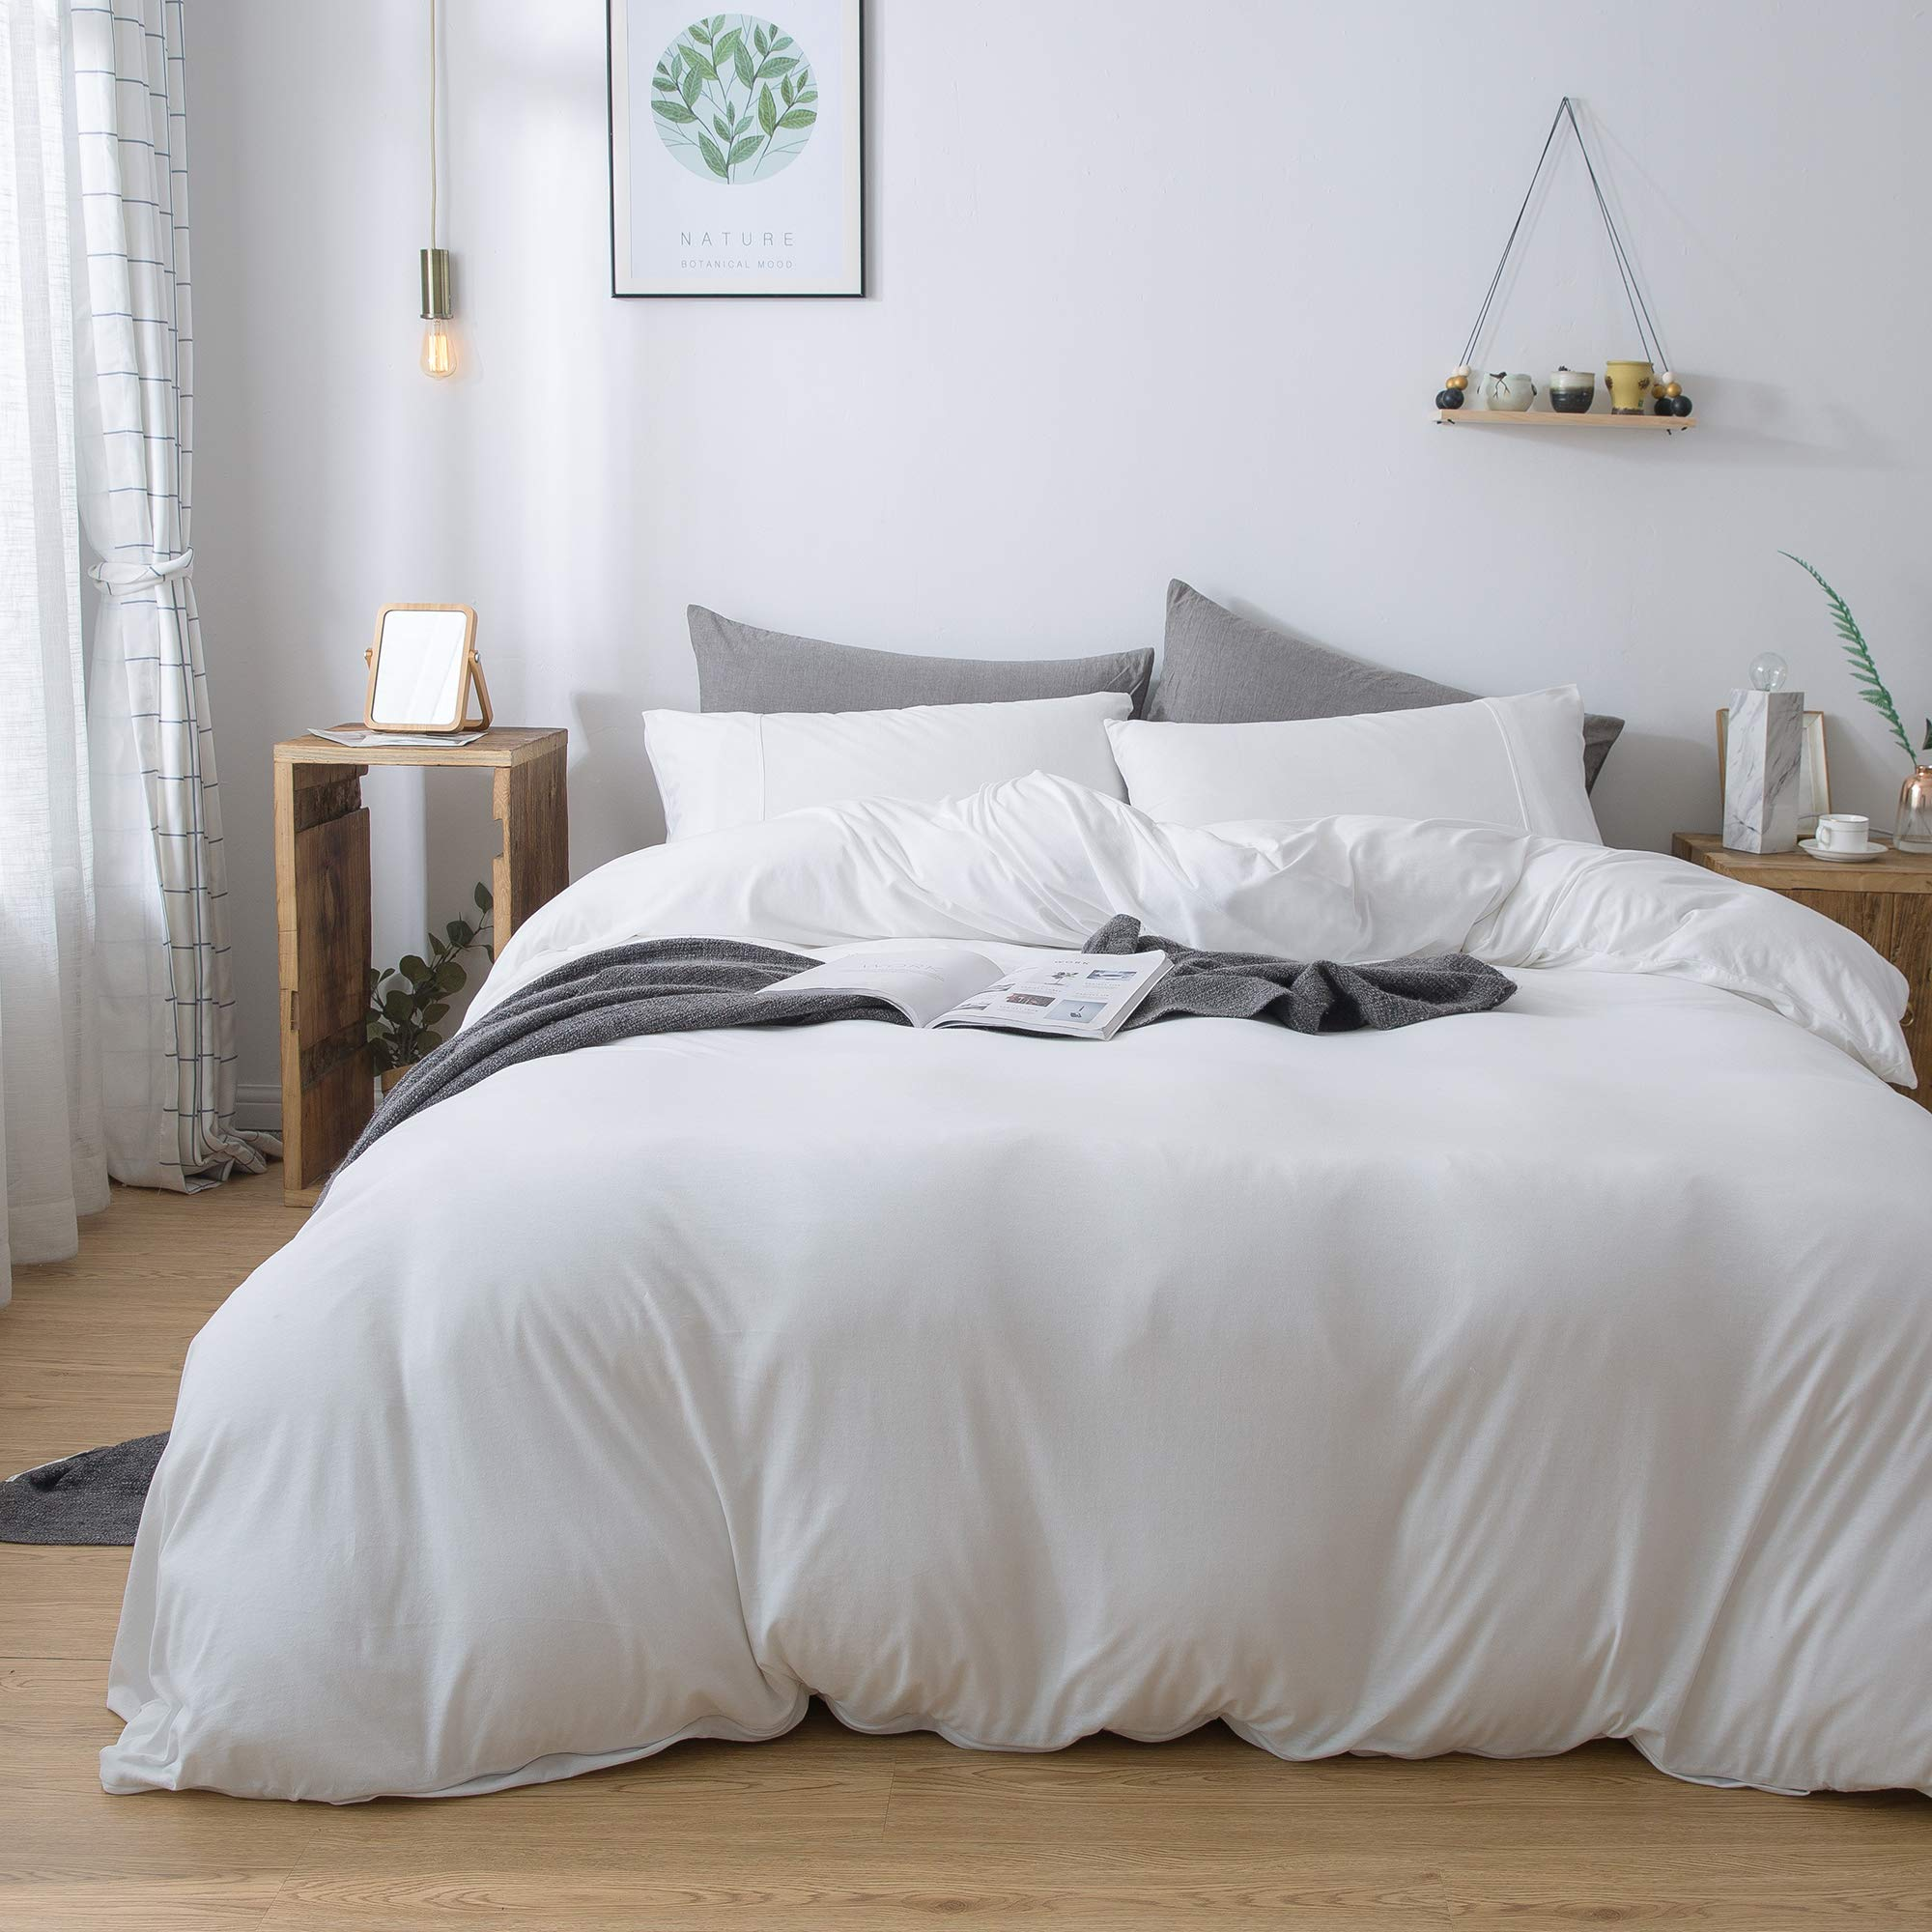 Household 100% Cotton Jersey Knit Duvet Cover Comfortable, Super Soft Includes 2 Pillowcase (White King